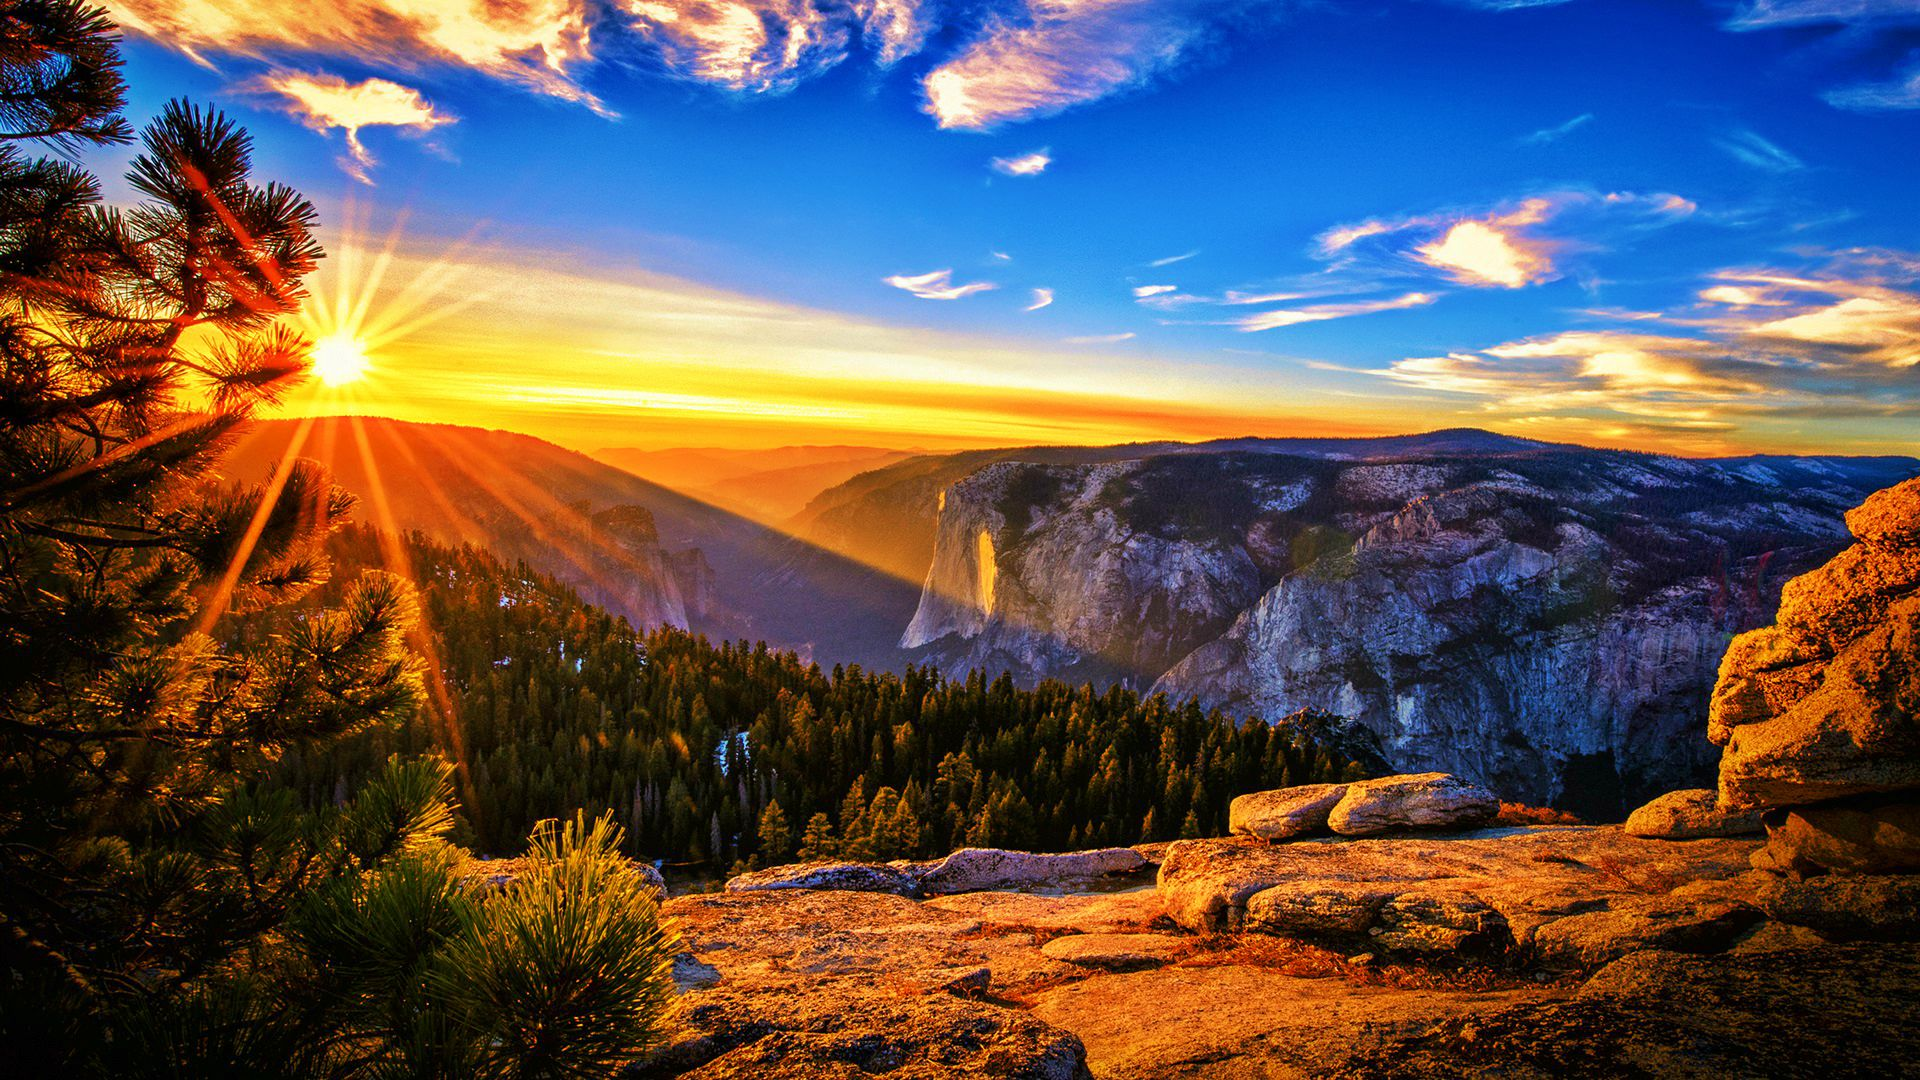 mountain sunrise wallpaper full hd pictures